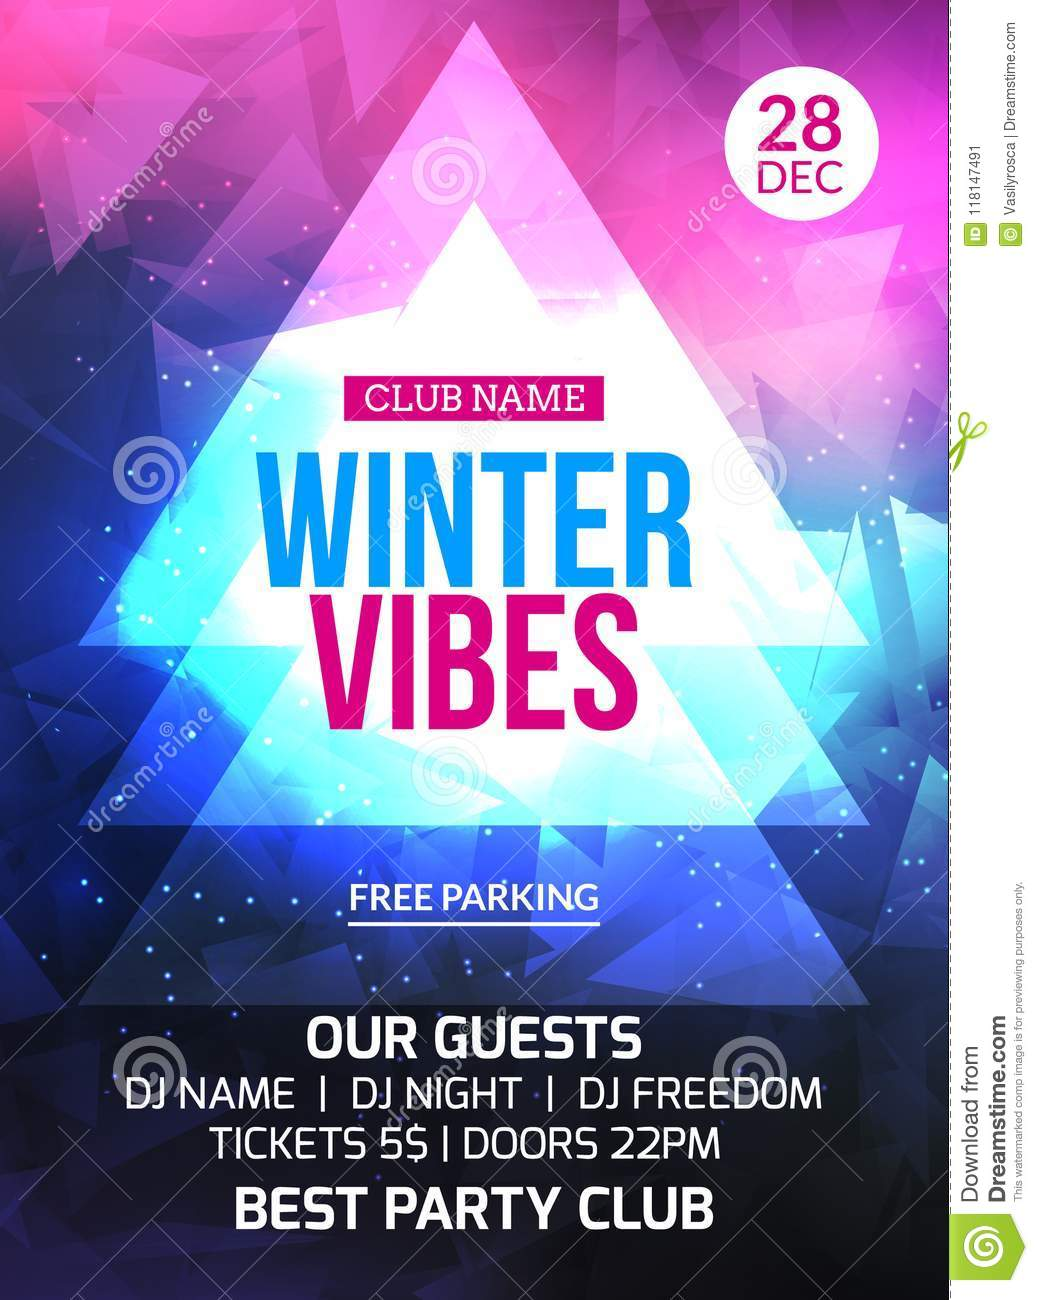 2018 new year winter party celebration flyer design template holiday invitation party poster card for